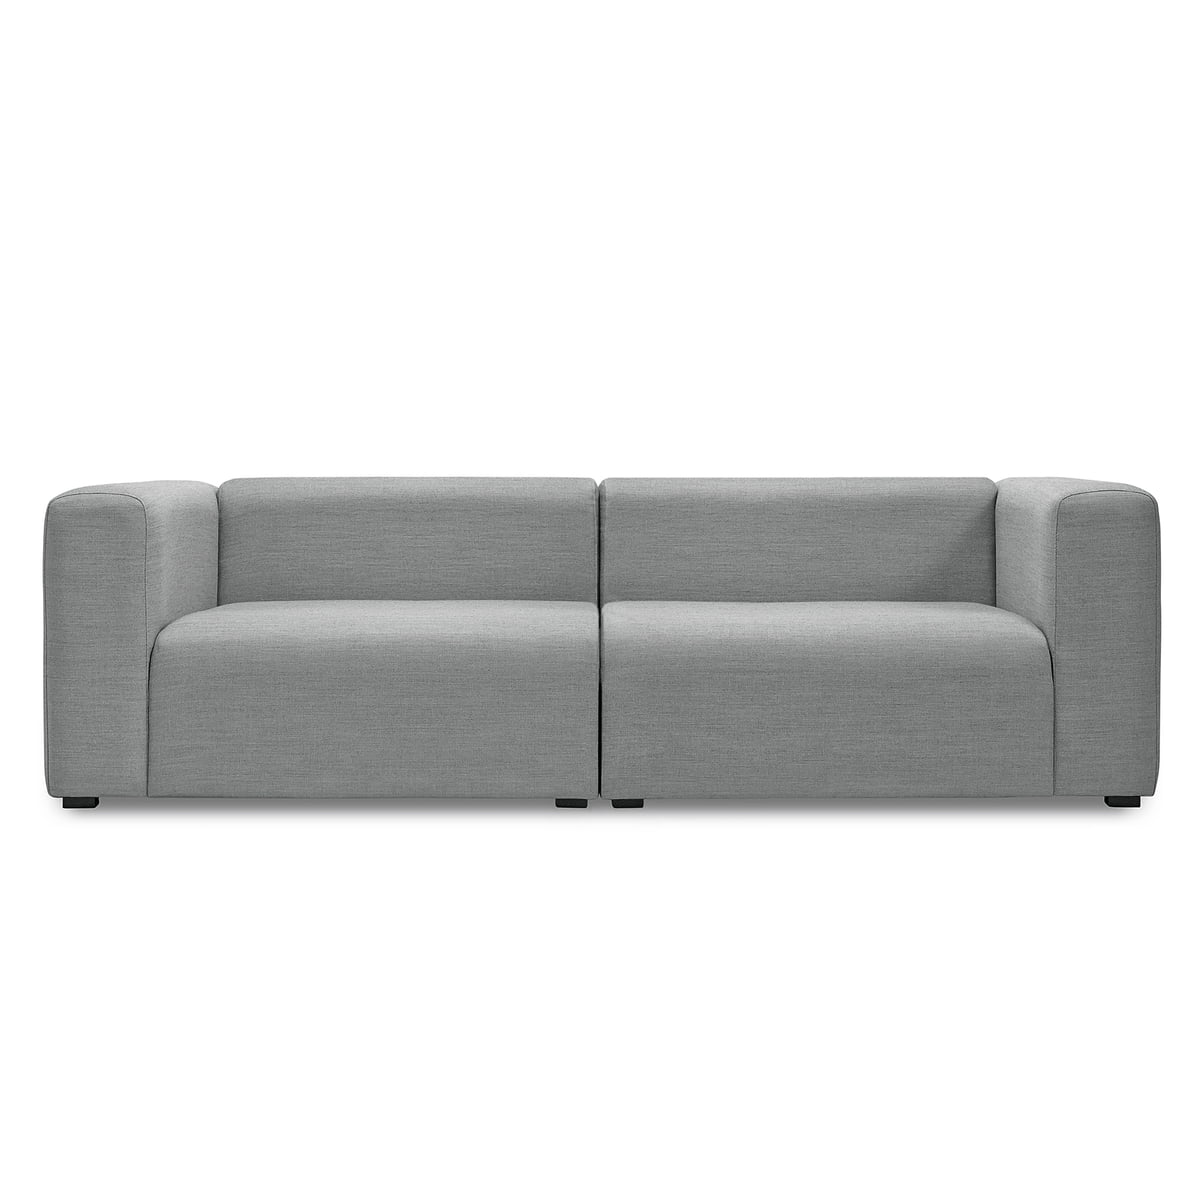 Terrific Hay Mags Sofa 2 5 Sitzer Kombination 1 Hellgrau Surface 120 Gmtry Best Dining Table And Chair Ideas Images Gmtryco